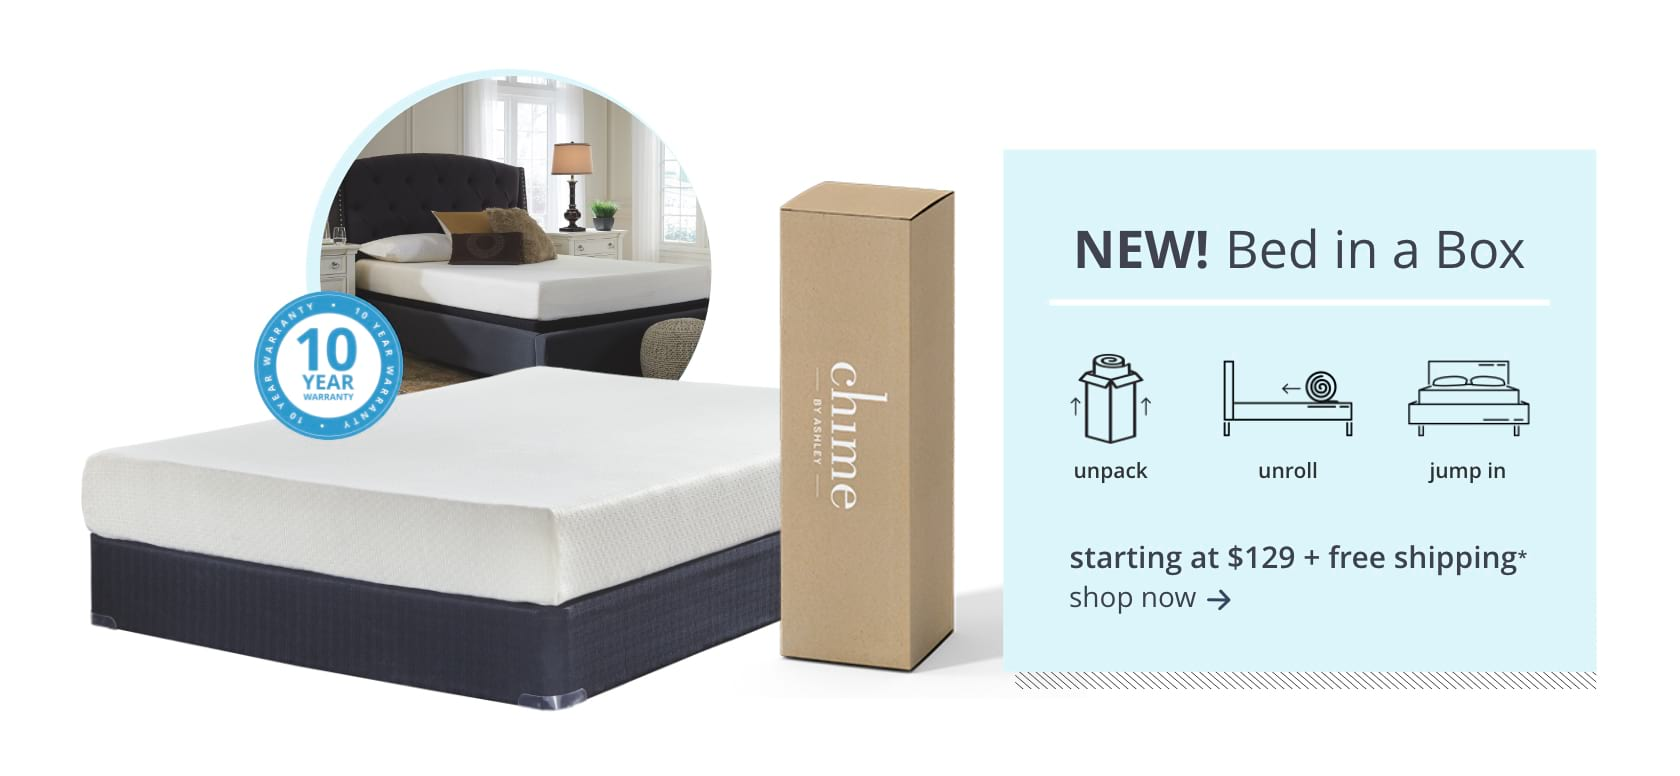 Ashley Sleep Memory Foam - Bed in a Box